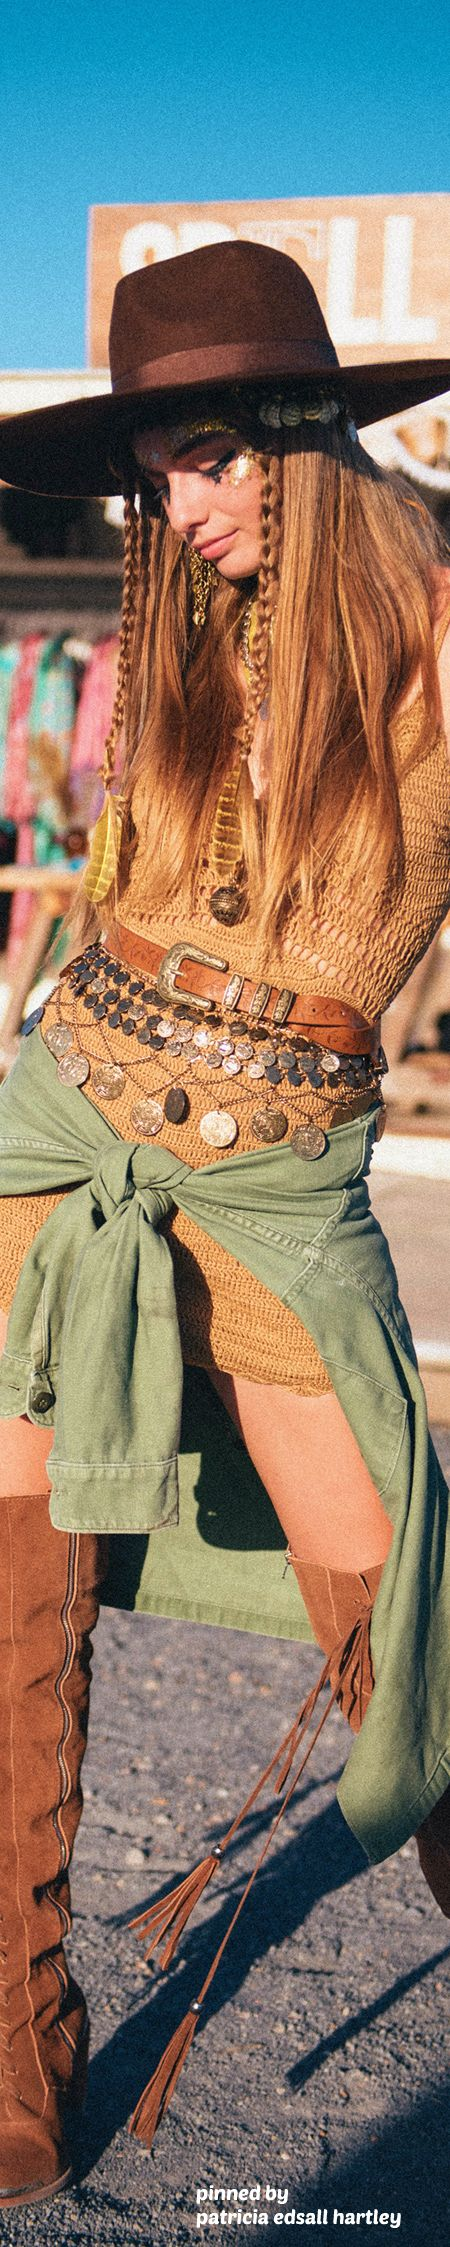 Bohemian Look :: ZAIMARA Lifestyle ::Beautiful Festival Outfits :: Summer Inspirations :: Gypsy Prints :: Hippie☮ :: Boho Chic Style :: Spread Love and Keep Positive :: Free Spirit:: Indie Folk:: Fall in Love:: #zaimaraglobal